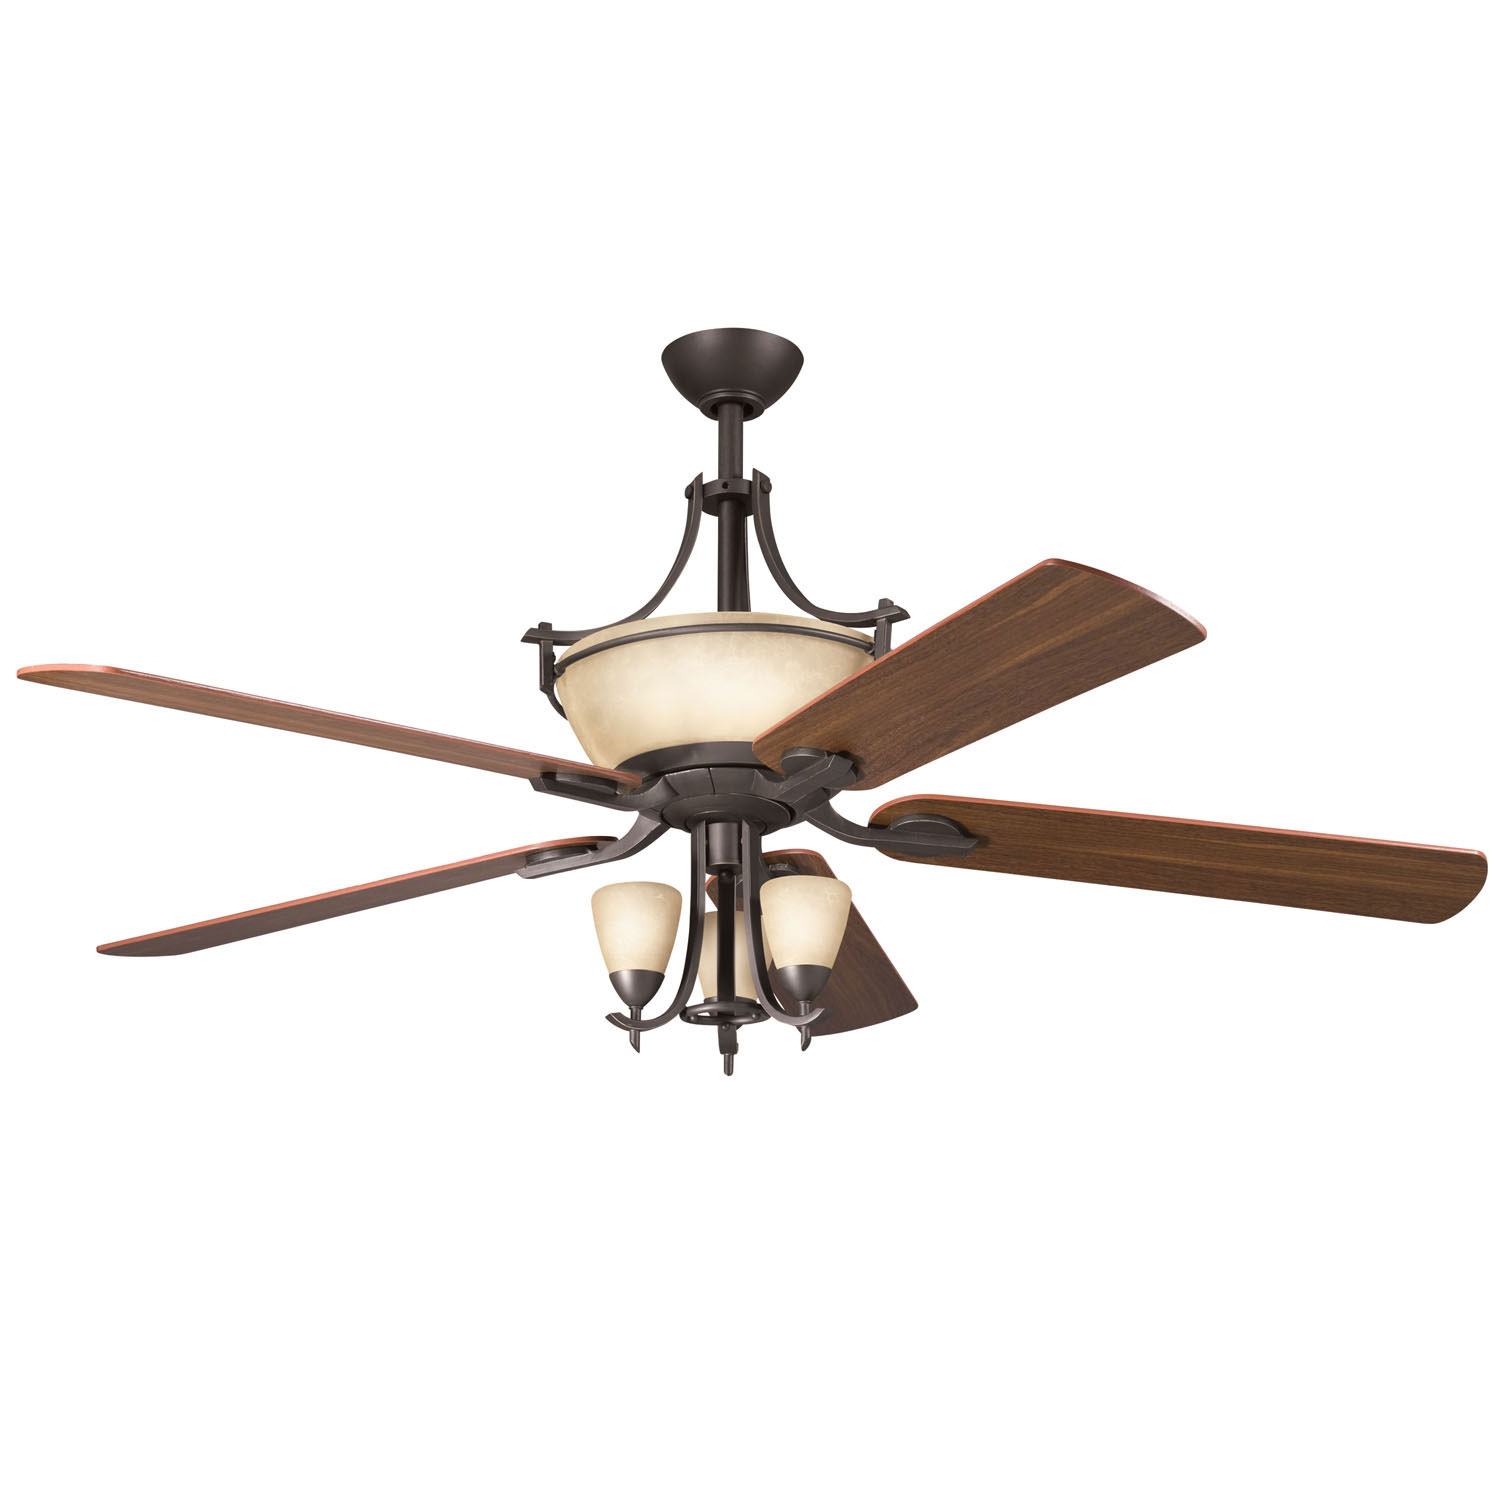 60 inchCeiling Fan from the Olympia collection by Kichler 300011OZ